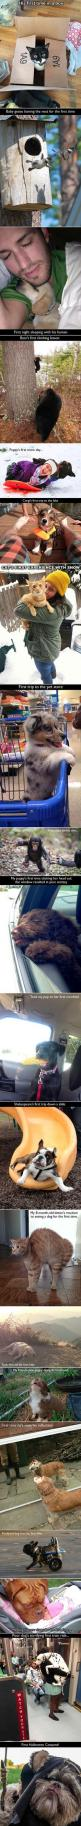 These animals were photographed trying things for the first time and their reactions are priceless.: Funny Animals, Cat, First Time, Animal Funnies, Cute Animals, Animals And Pets Funny, Baby Book, Dog, Firsttime